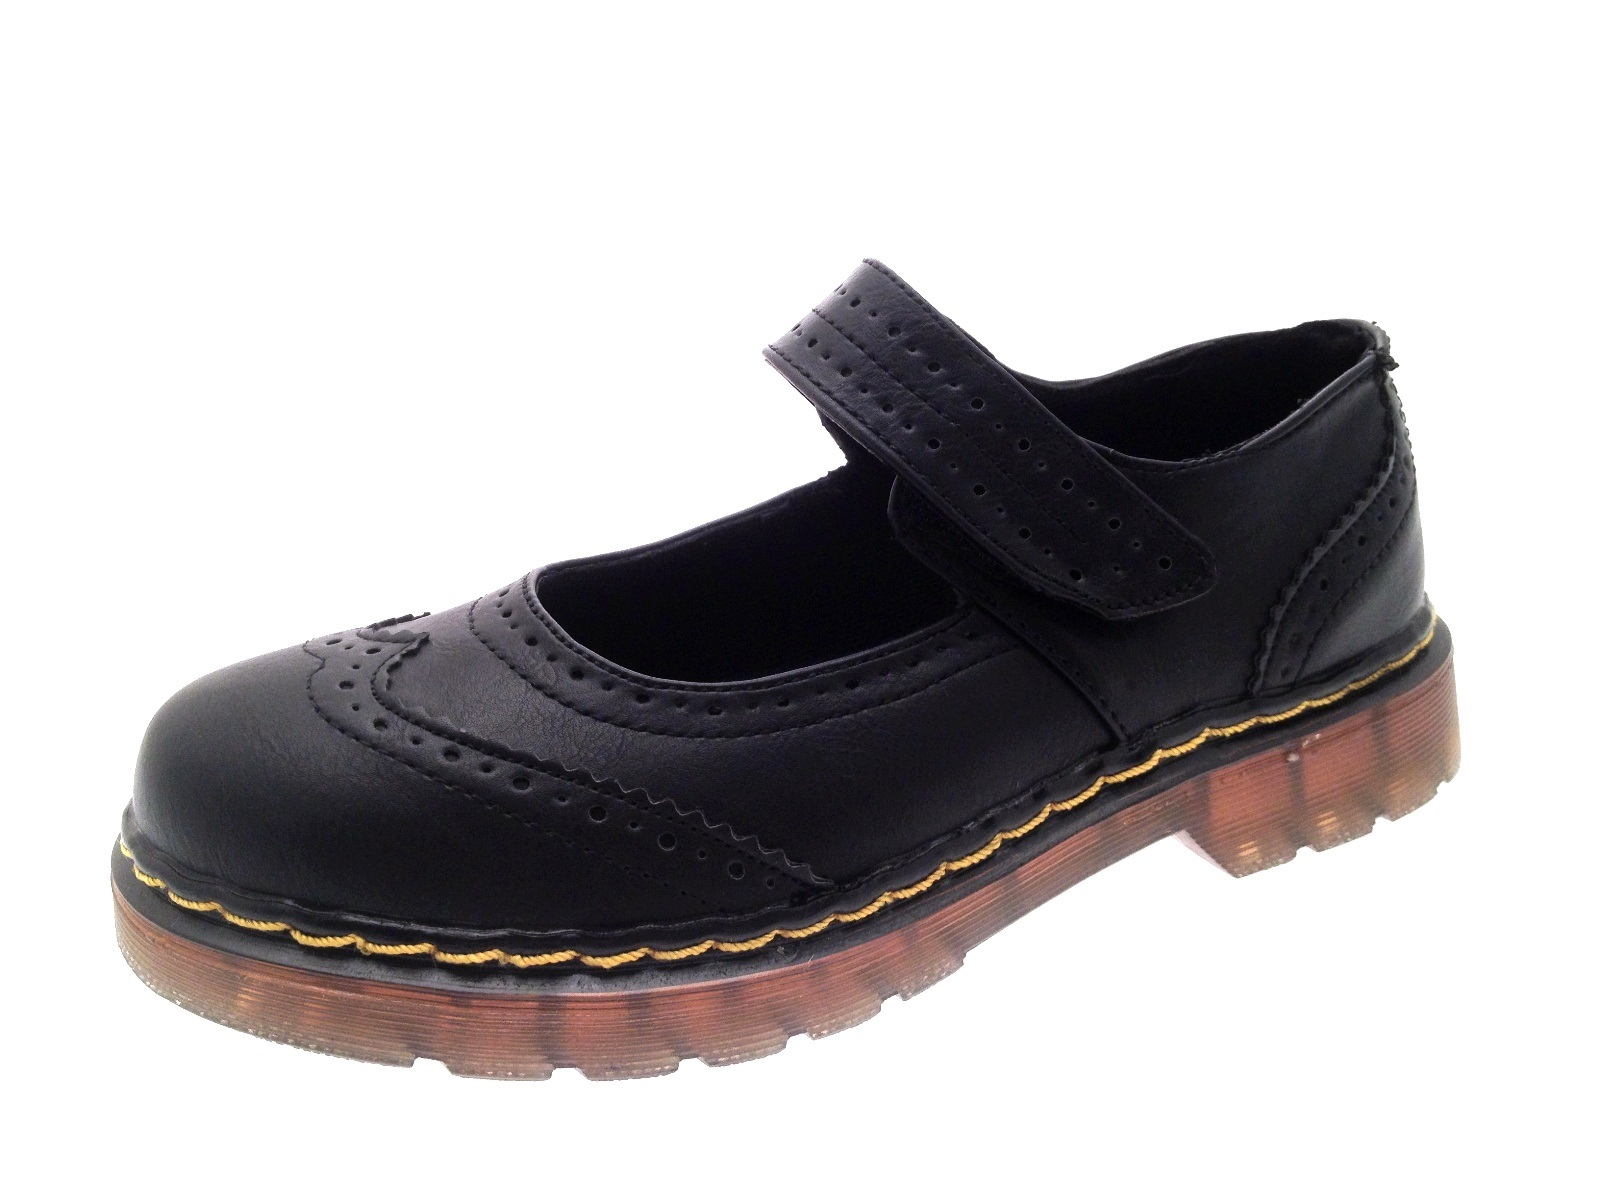 ad9272e2922 Girls Womens Kids Black Mary Jane   T Bar School Shoes Flat Chunky Brogues  Size